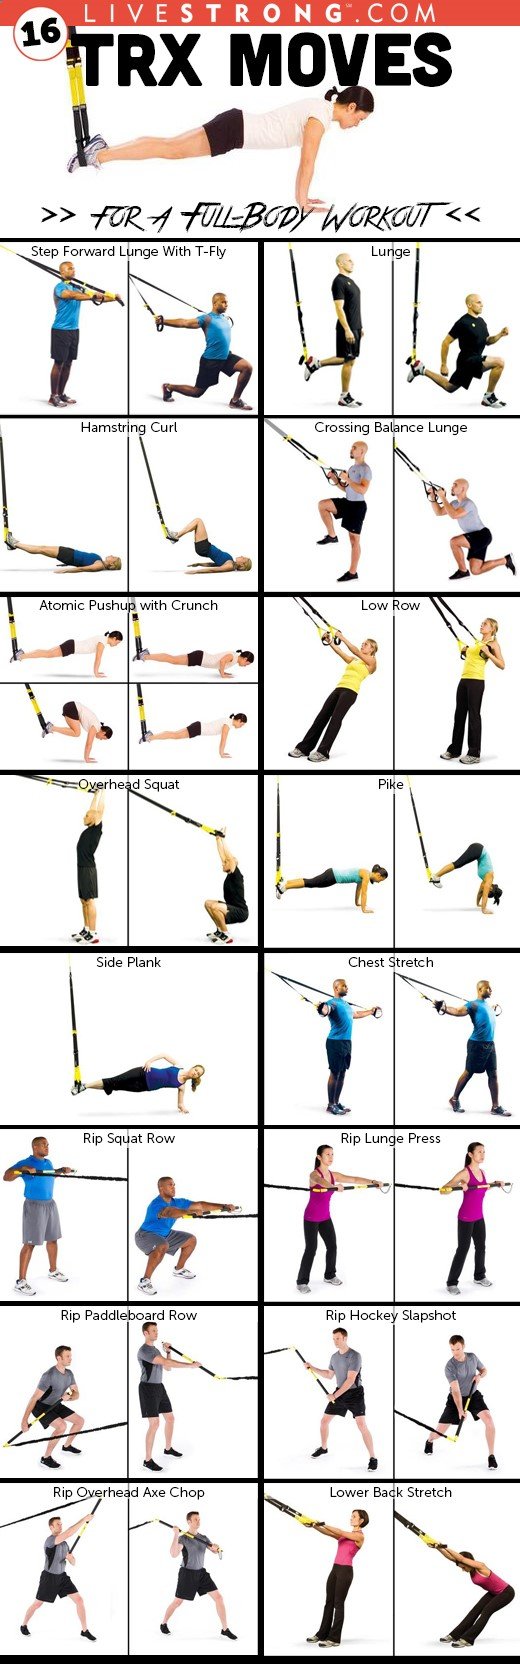 16 TRX Moves for a Full-Body Workout TRX Training www.livestrong.co...